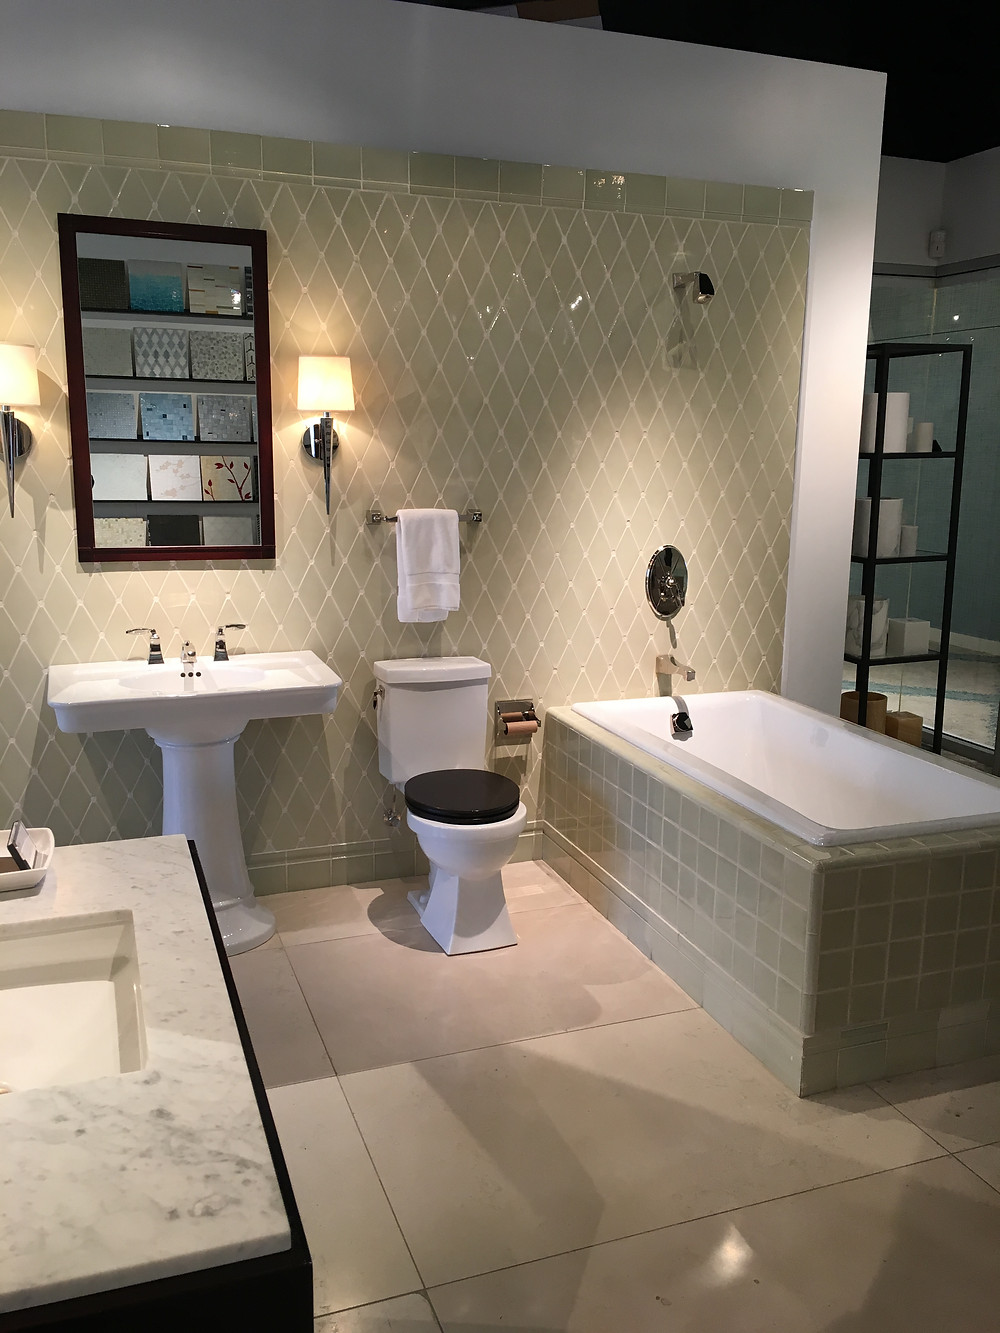 The extra large floor tiles help add drama to this bath vignette.